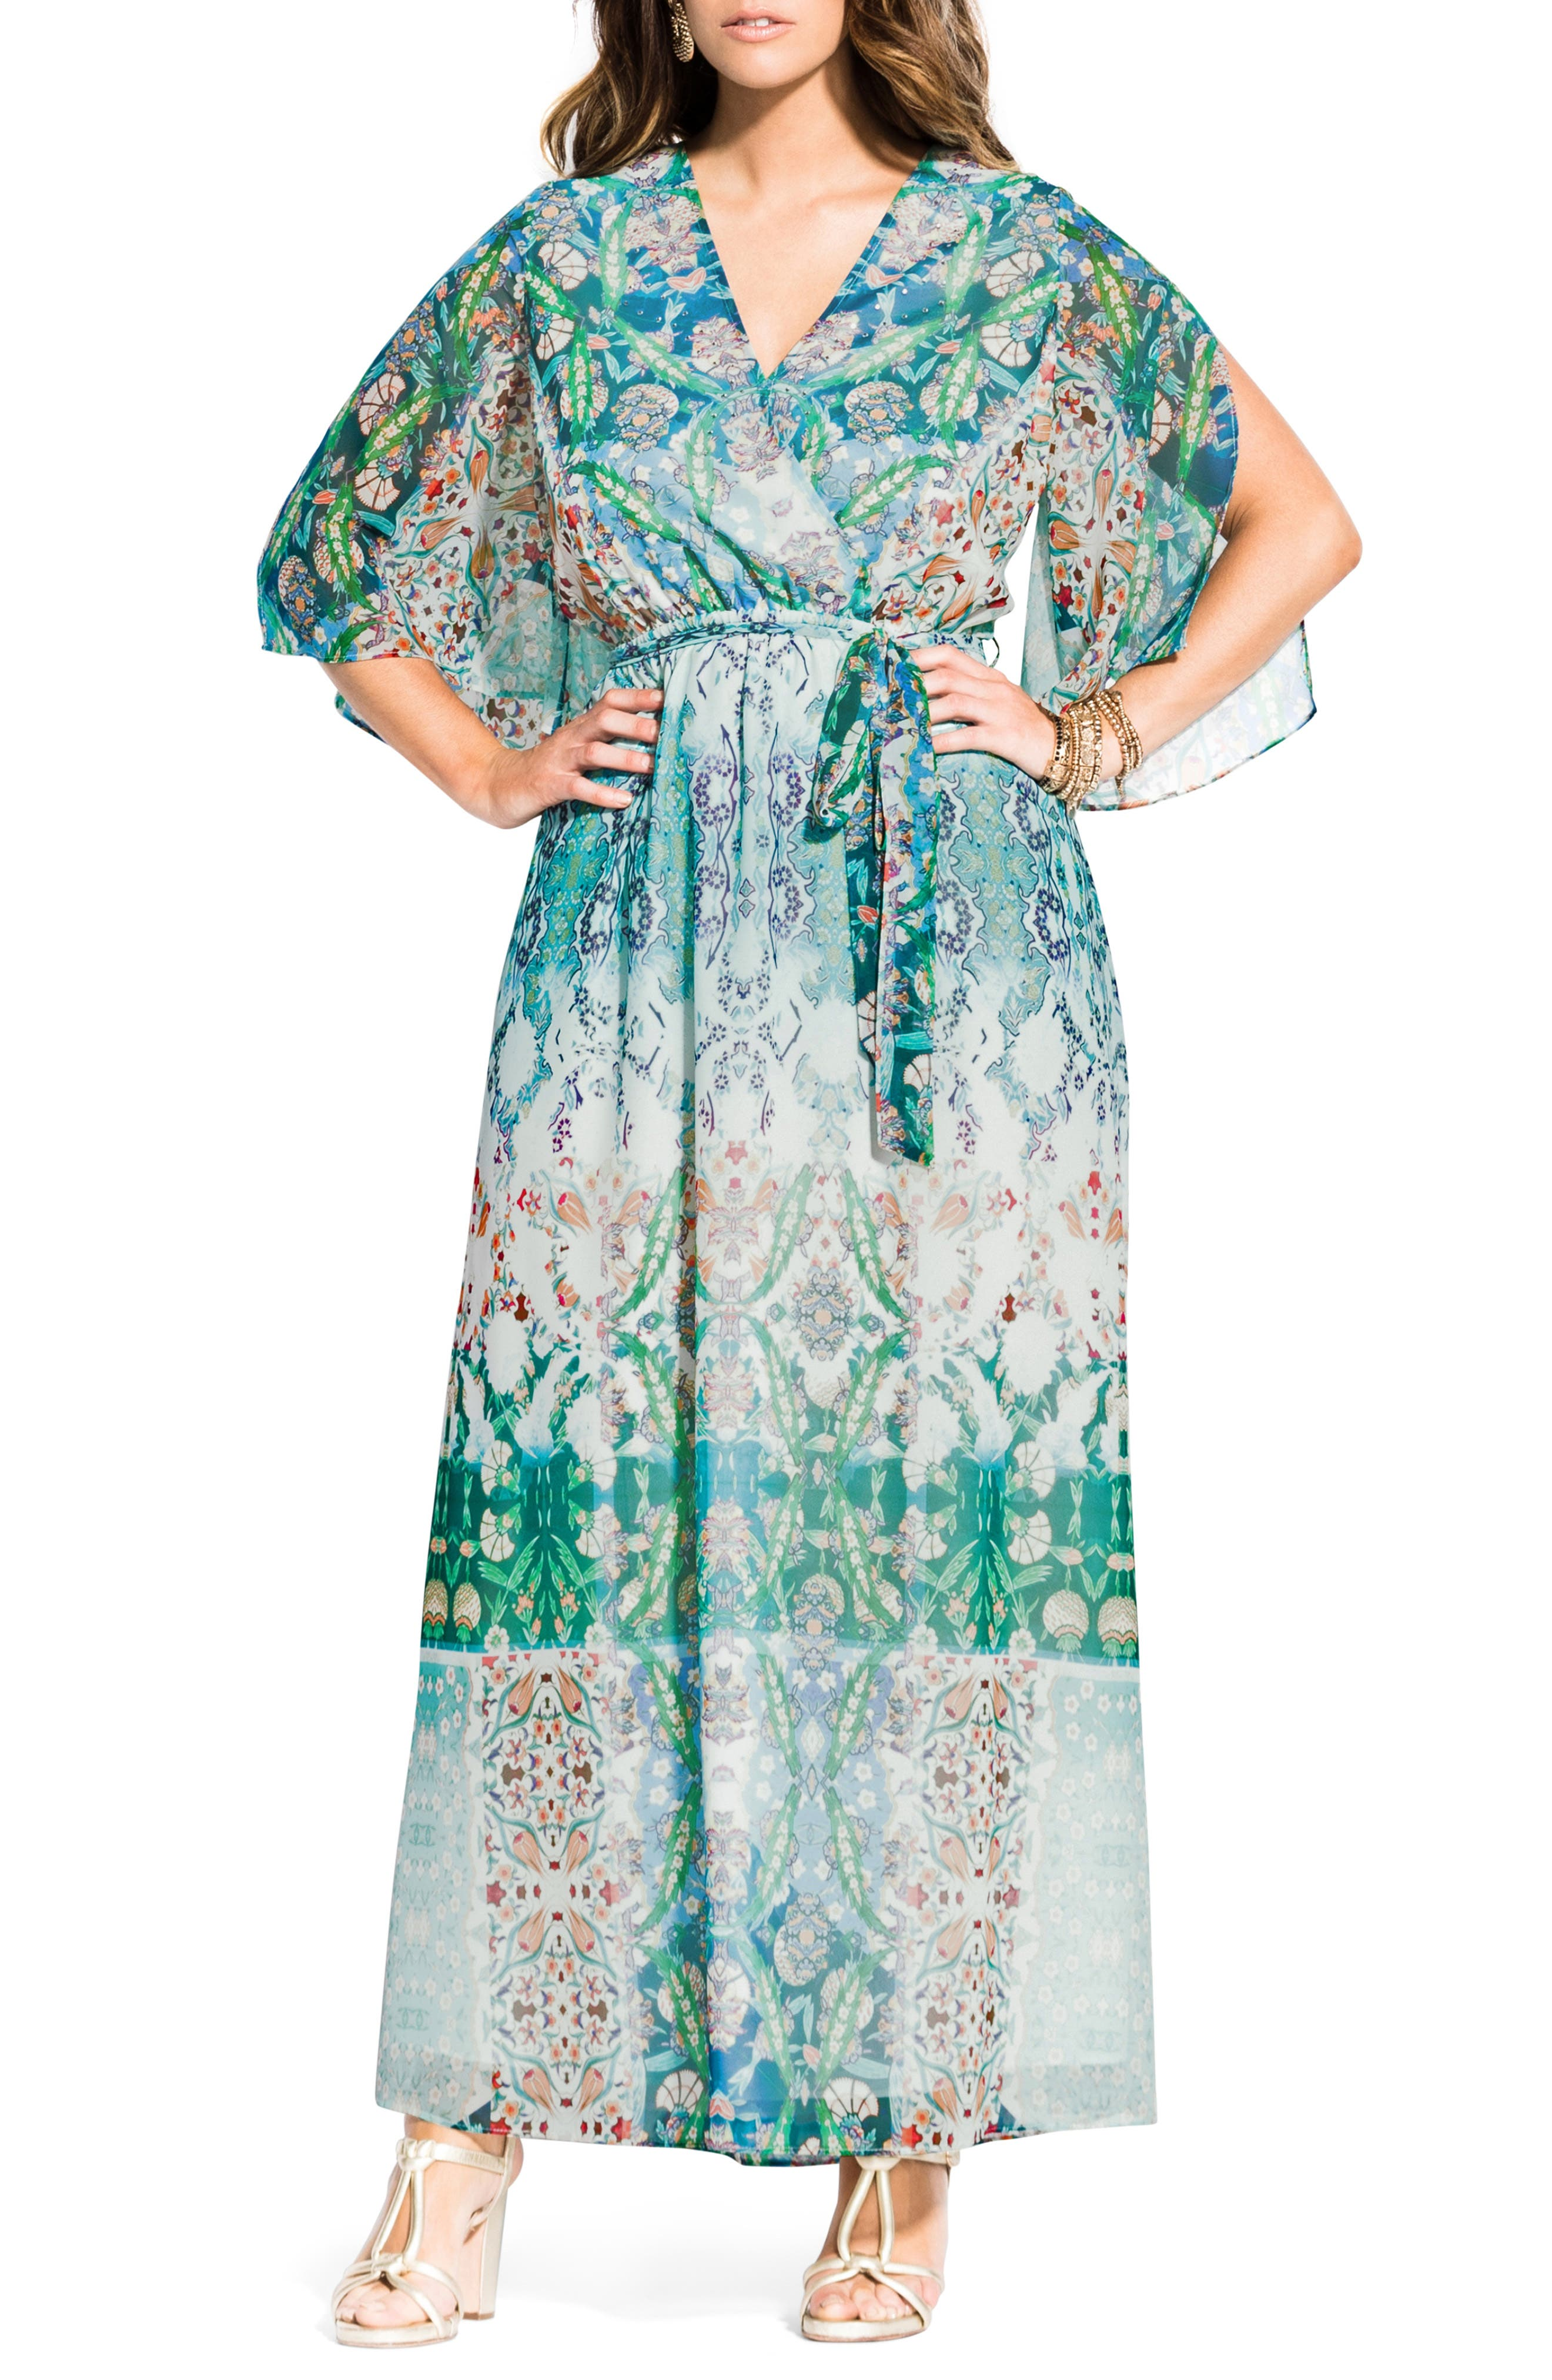 Plus Size City Chic Bella Vacanza Collection Istanbul Woven Maxi Dress, White